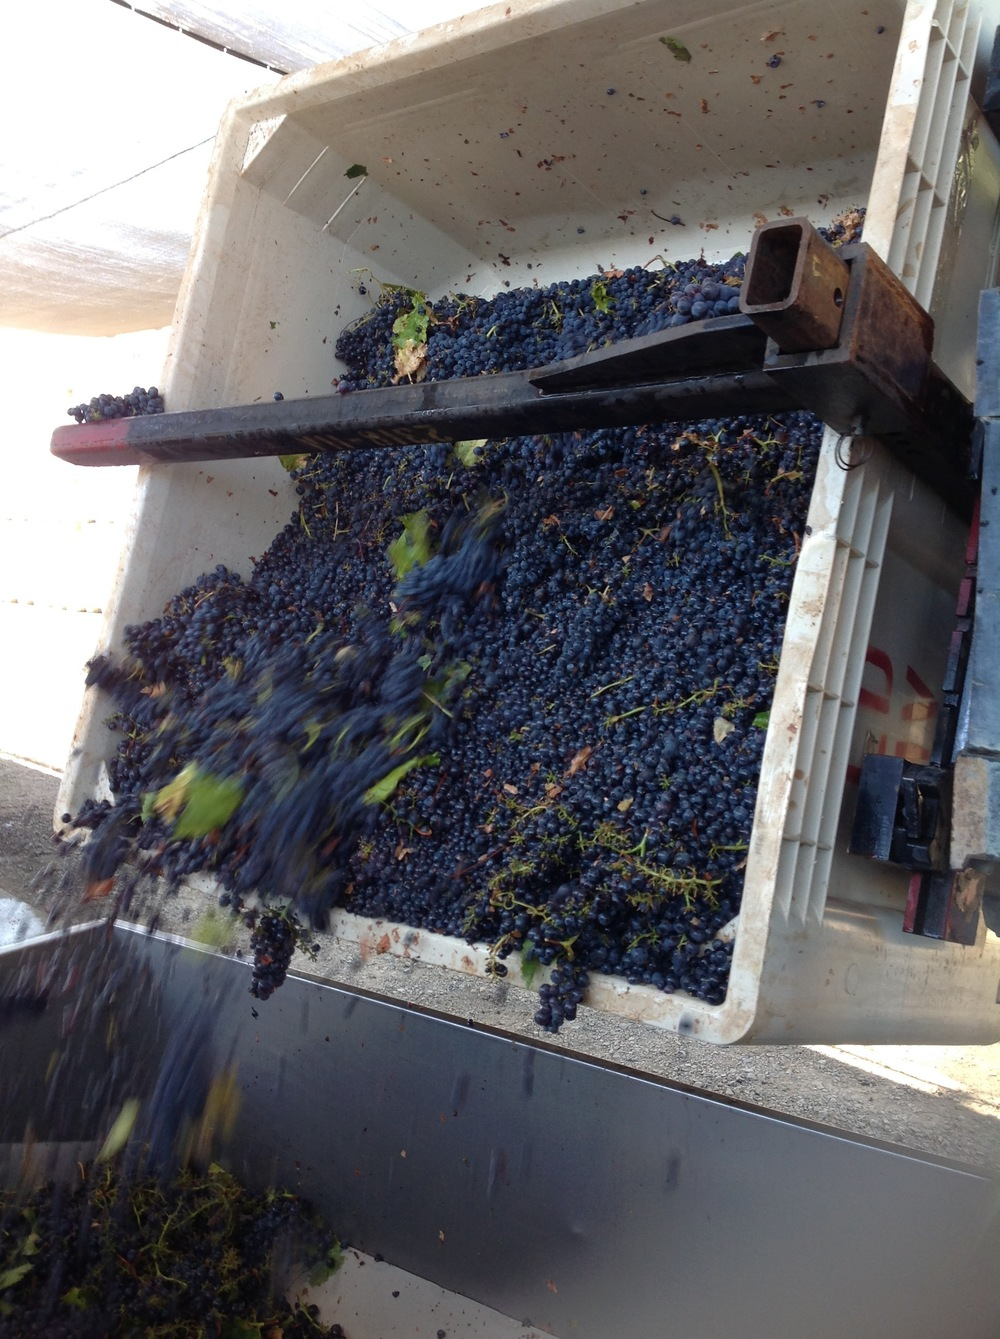 Dumping 1000 pounds of grapes